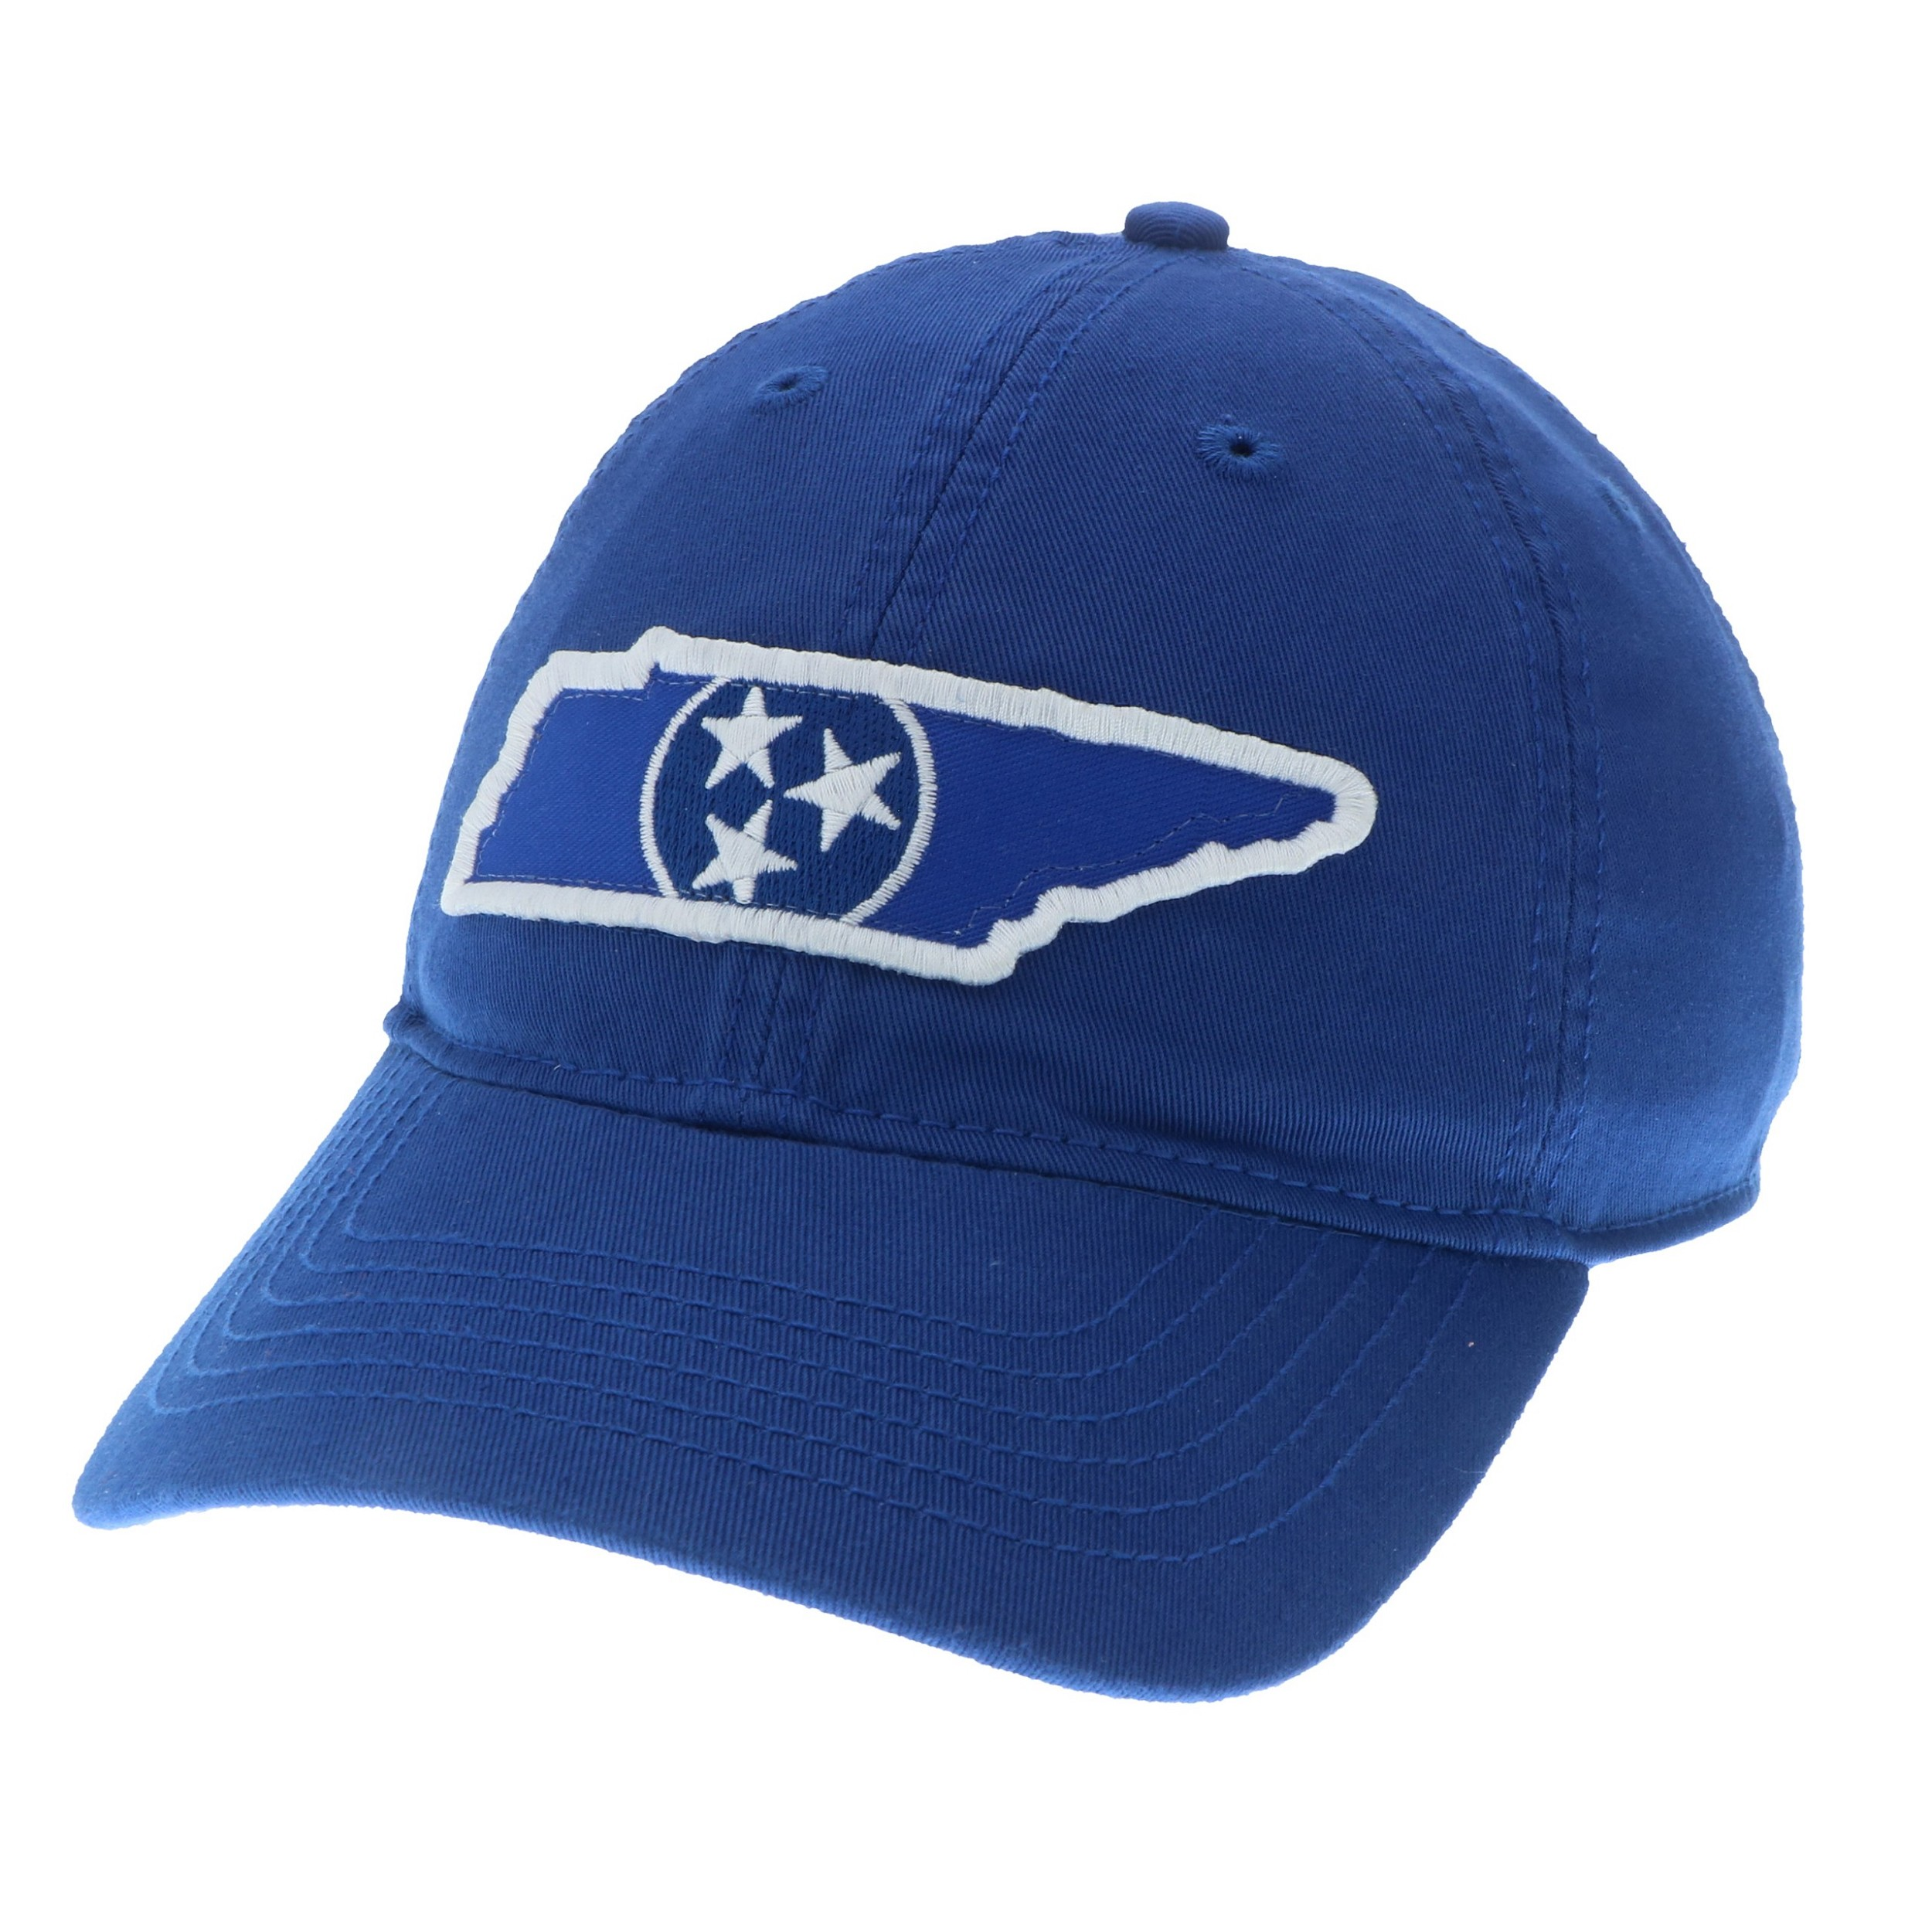 TriStar State MT Relaxed Twill Hat